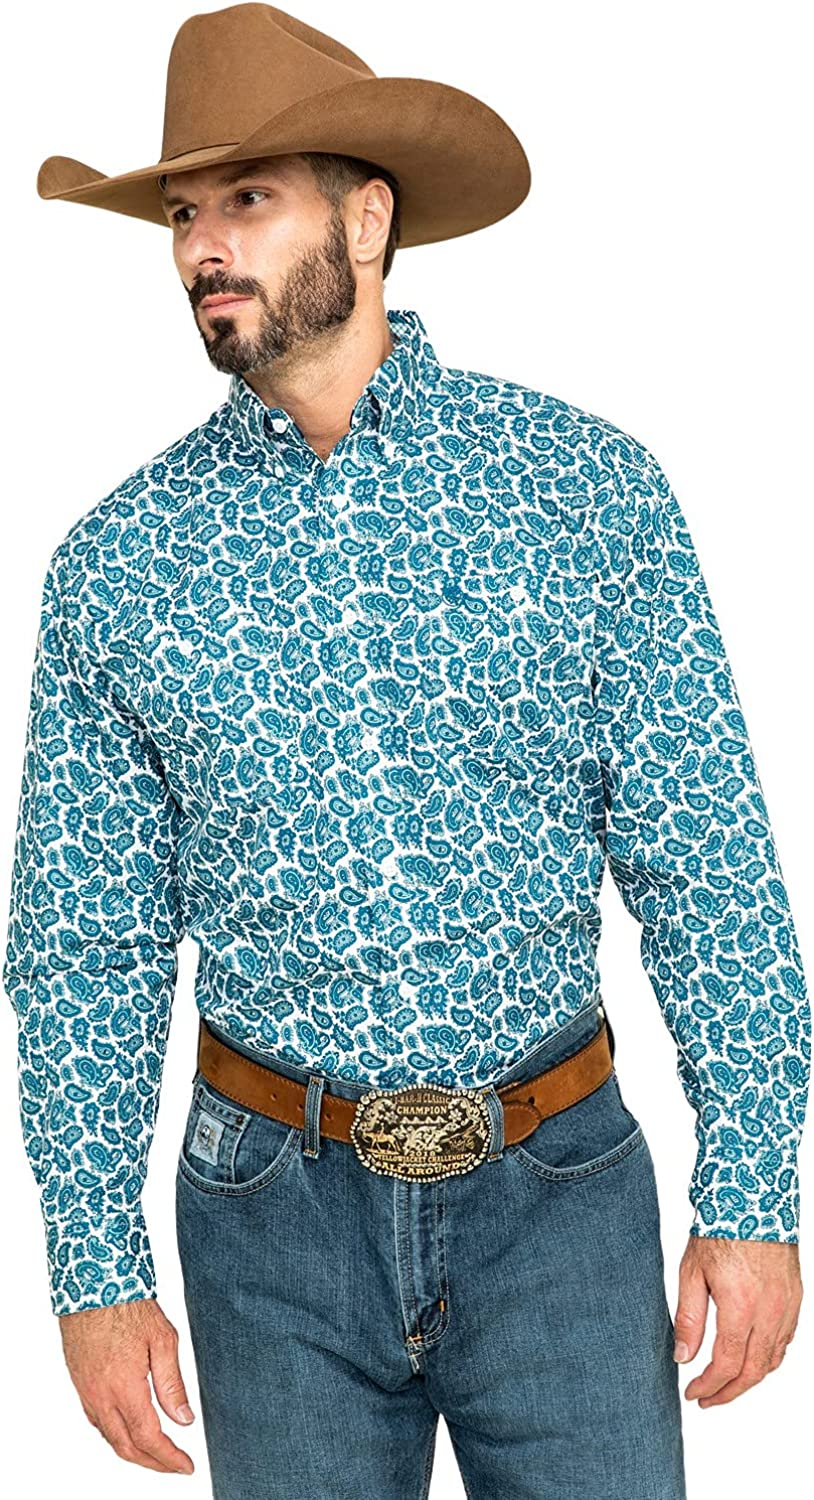 Wrangler Men's George Strait by Small Paisley Print Long Sleeve Western Shirt Teal Large Tall